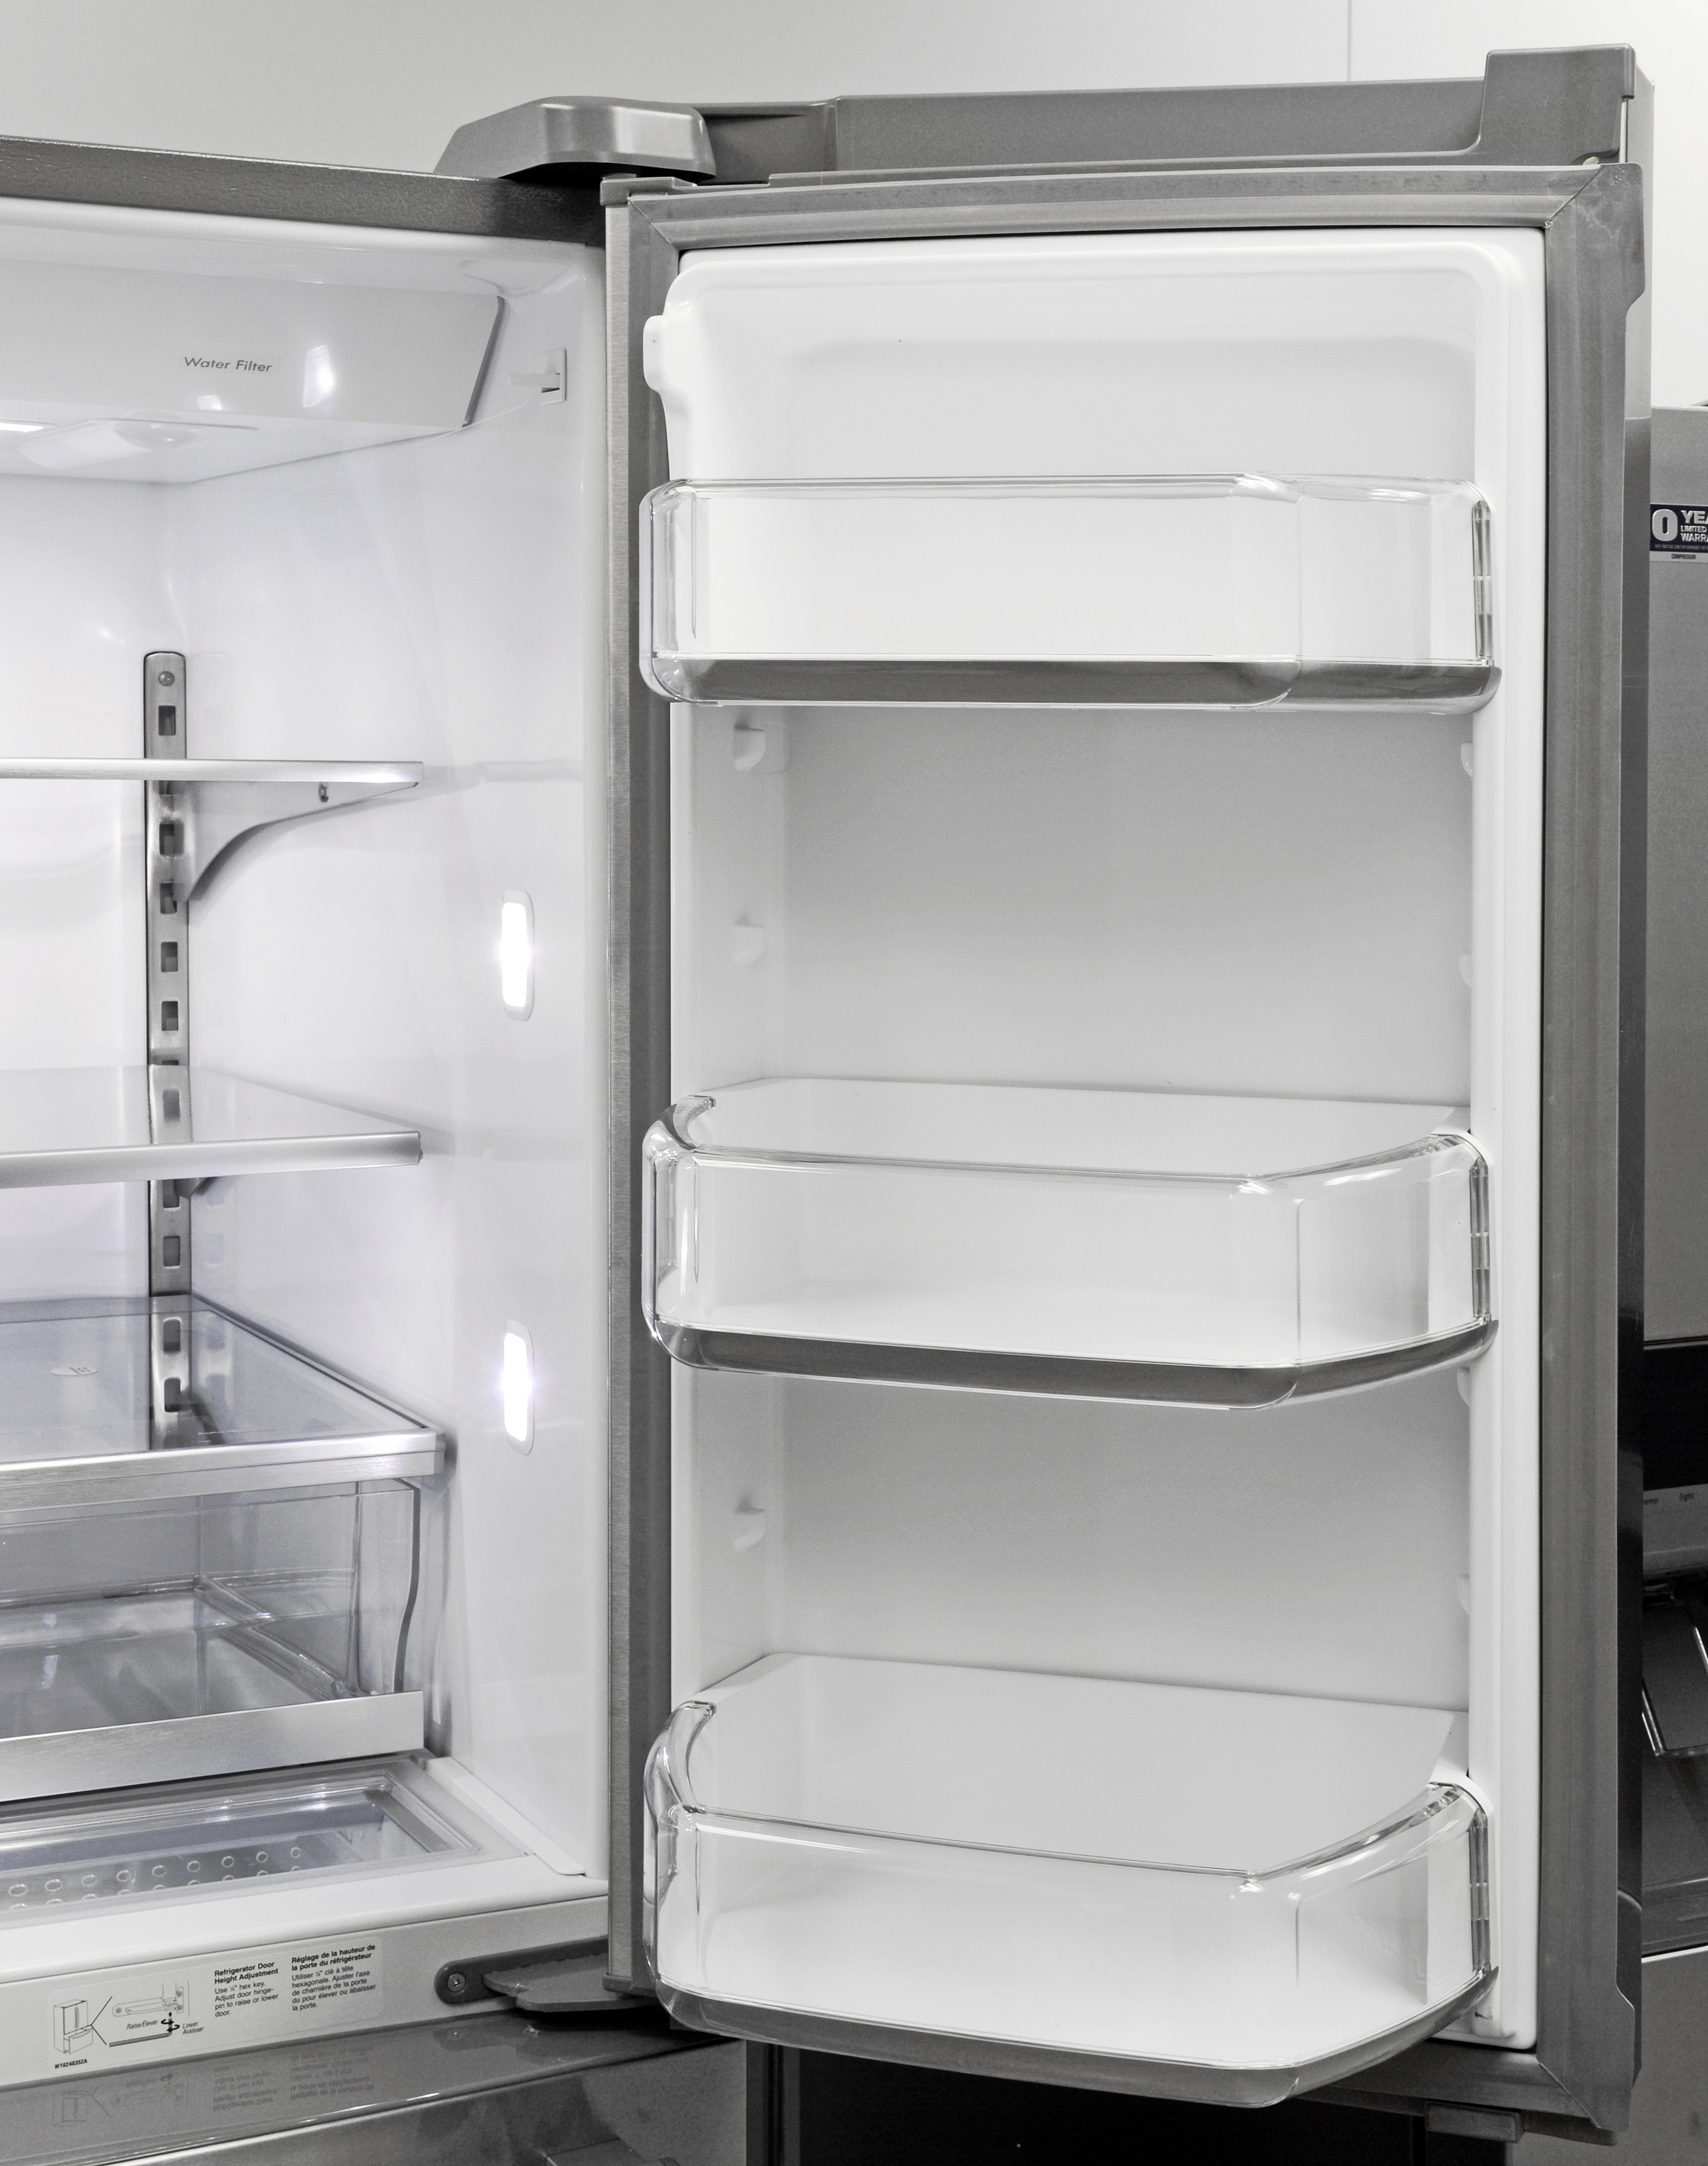 The Maytag MFX2876DRM's right door has plenty of gallon-sized storage for milk and juice.